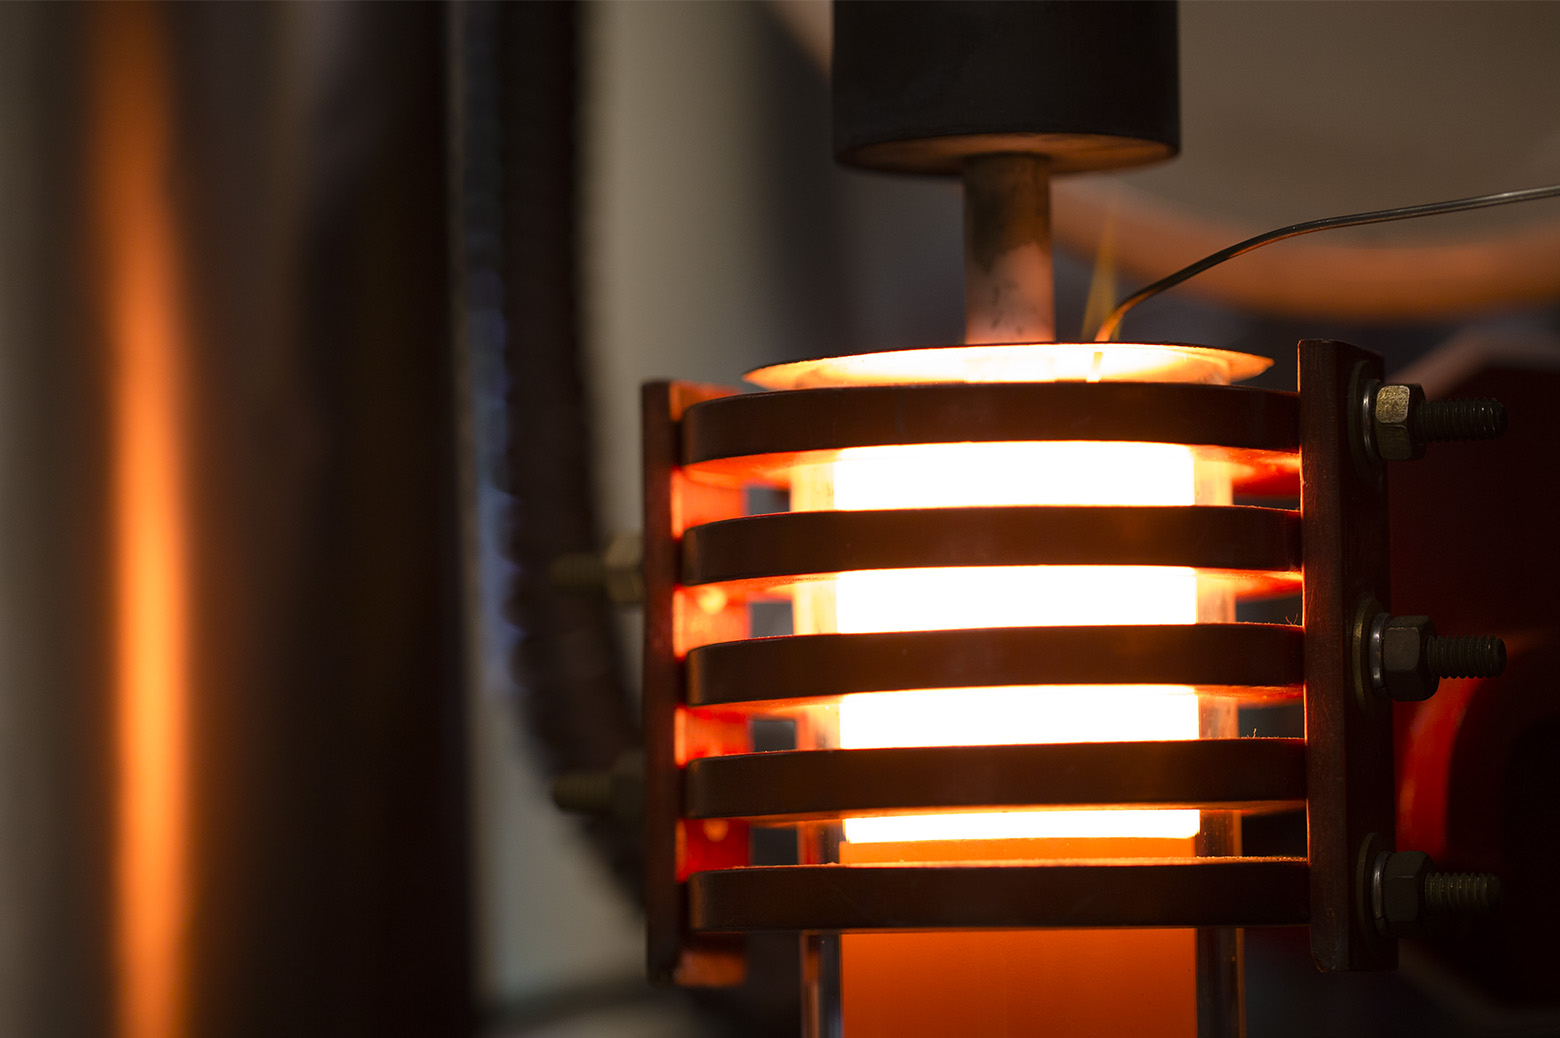 A demonstration of a machine that uses heat to densify a ceramic known as LLZO at 1,225 degrees Celsius in the Phoenix Memorial Laboratory building on August 7, 2018 in Ann Arbor, MI.